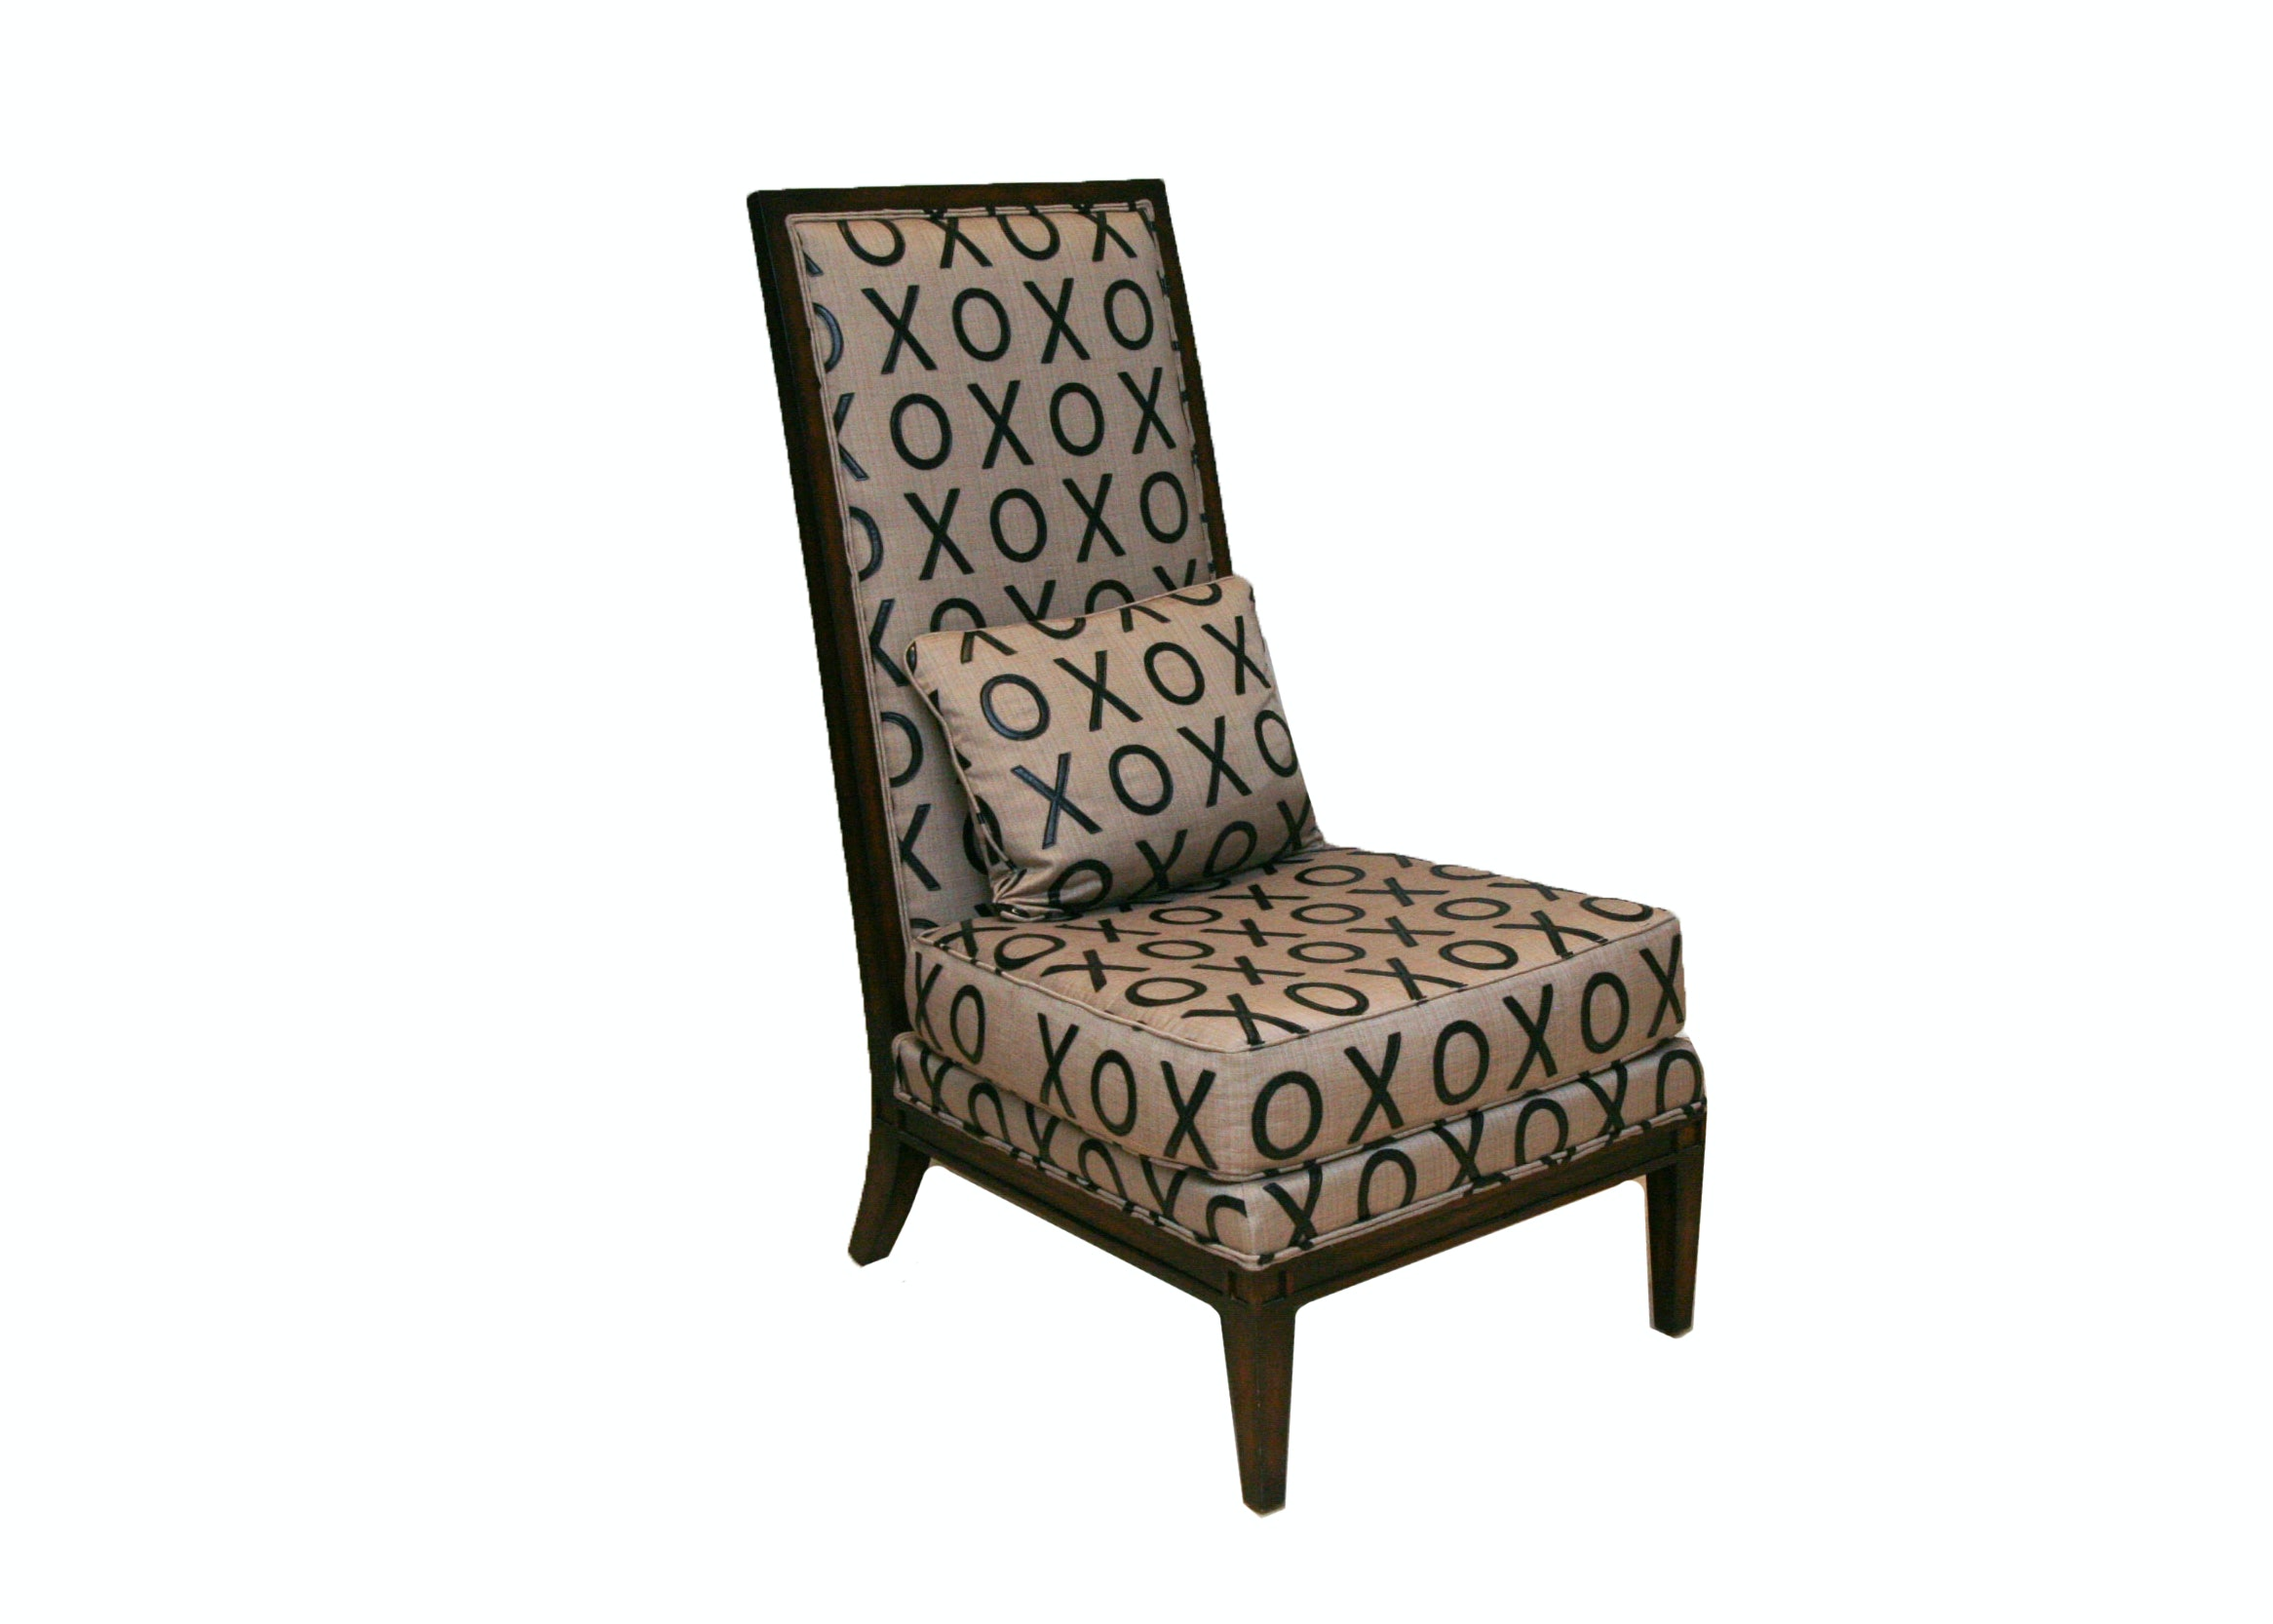 Contemporary Faux Leather XOXO Chair